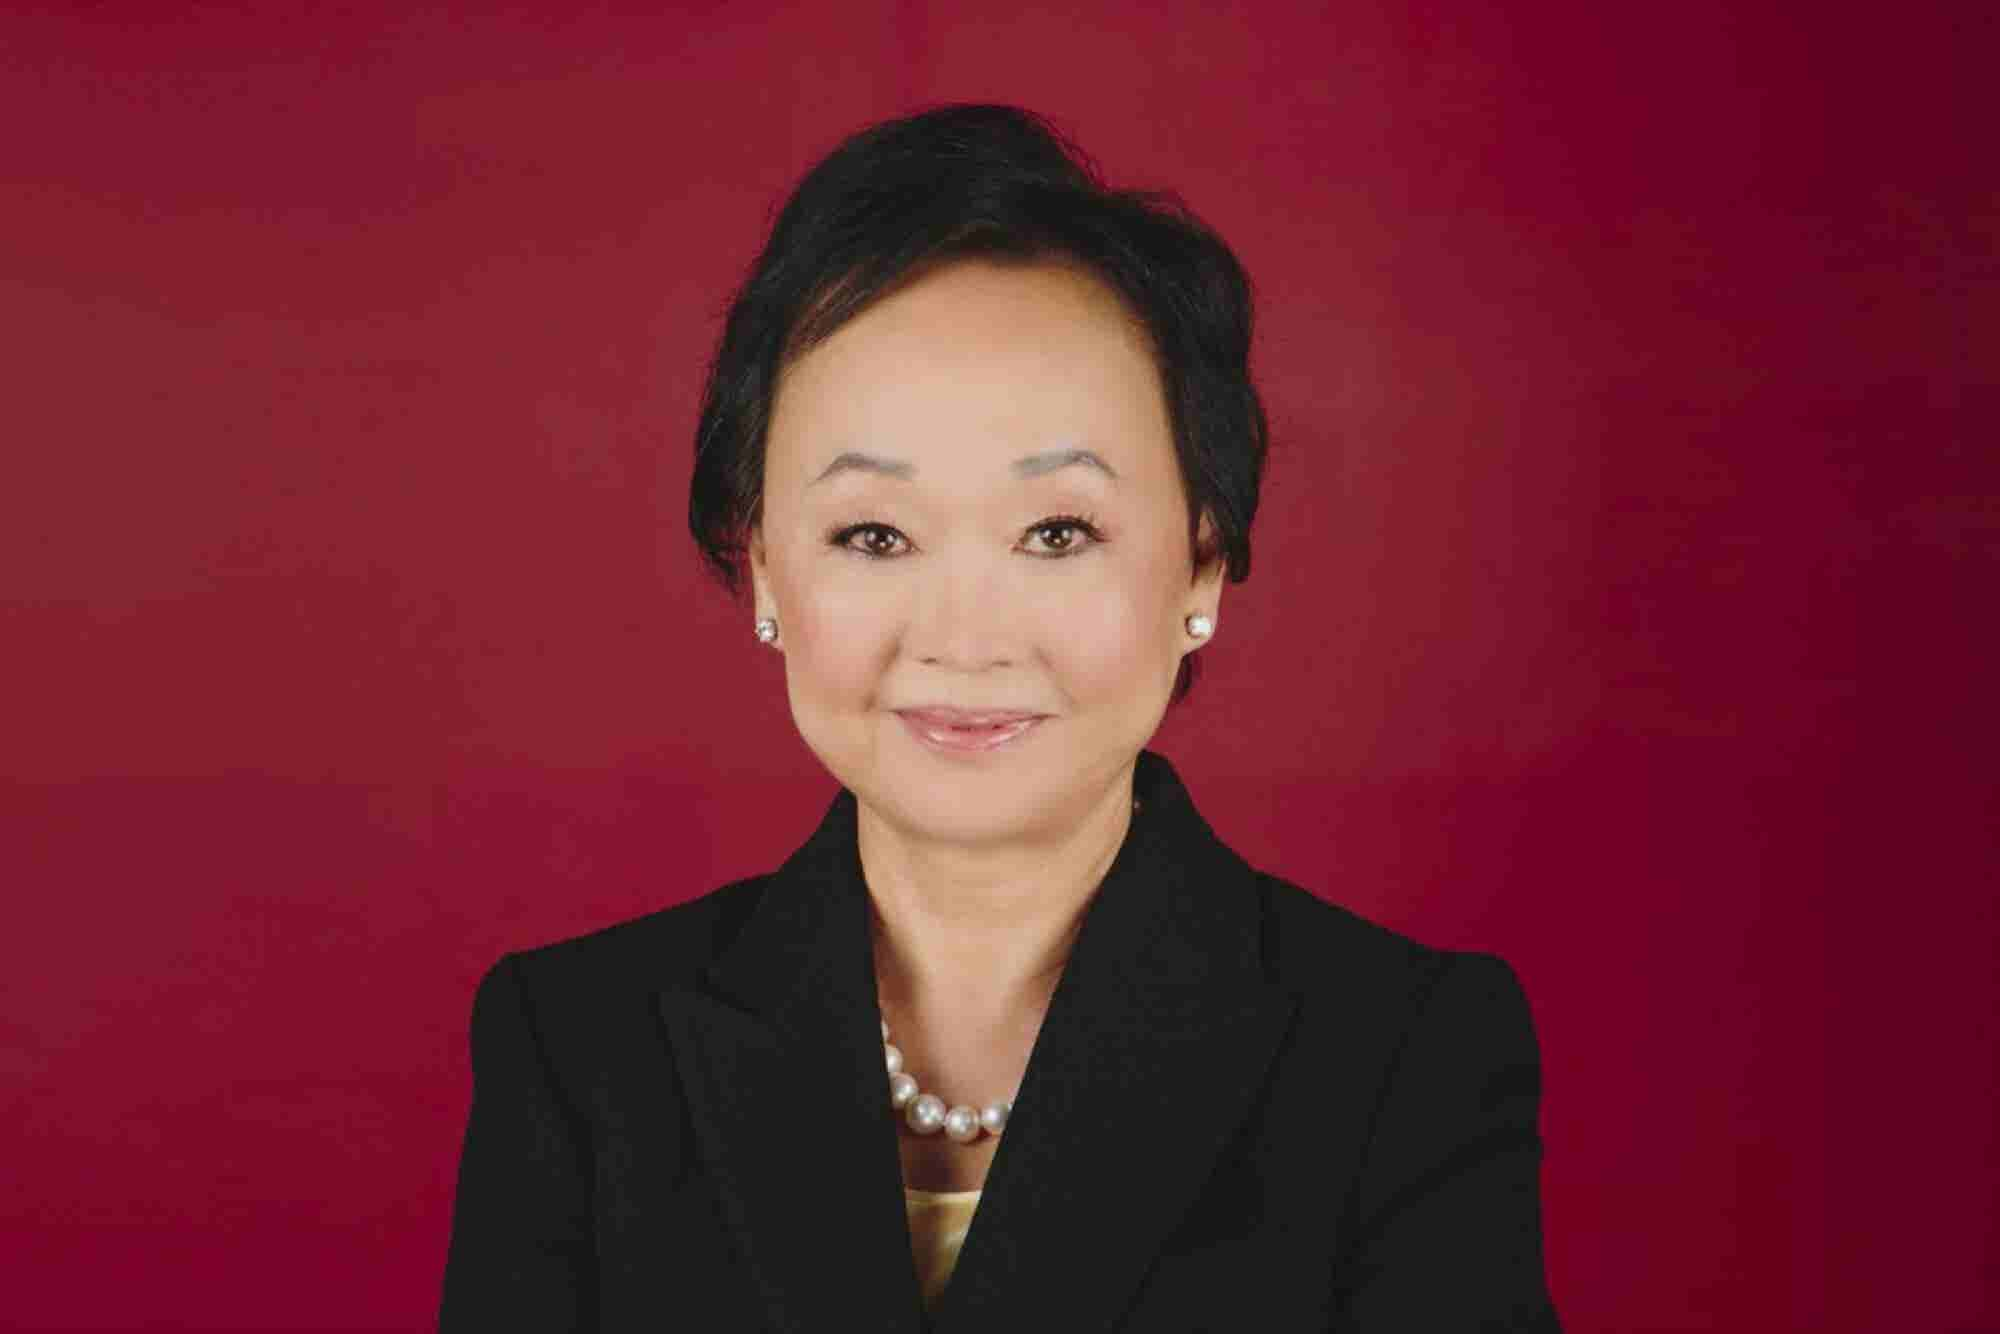 The Co-Founder of Panda Express Shares the Leadership Quality That Helps Her Keep the Brand Fresh